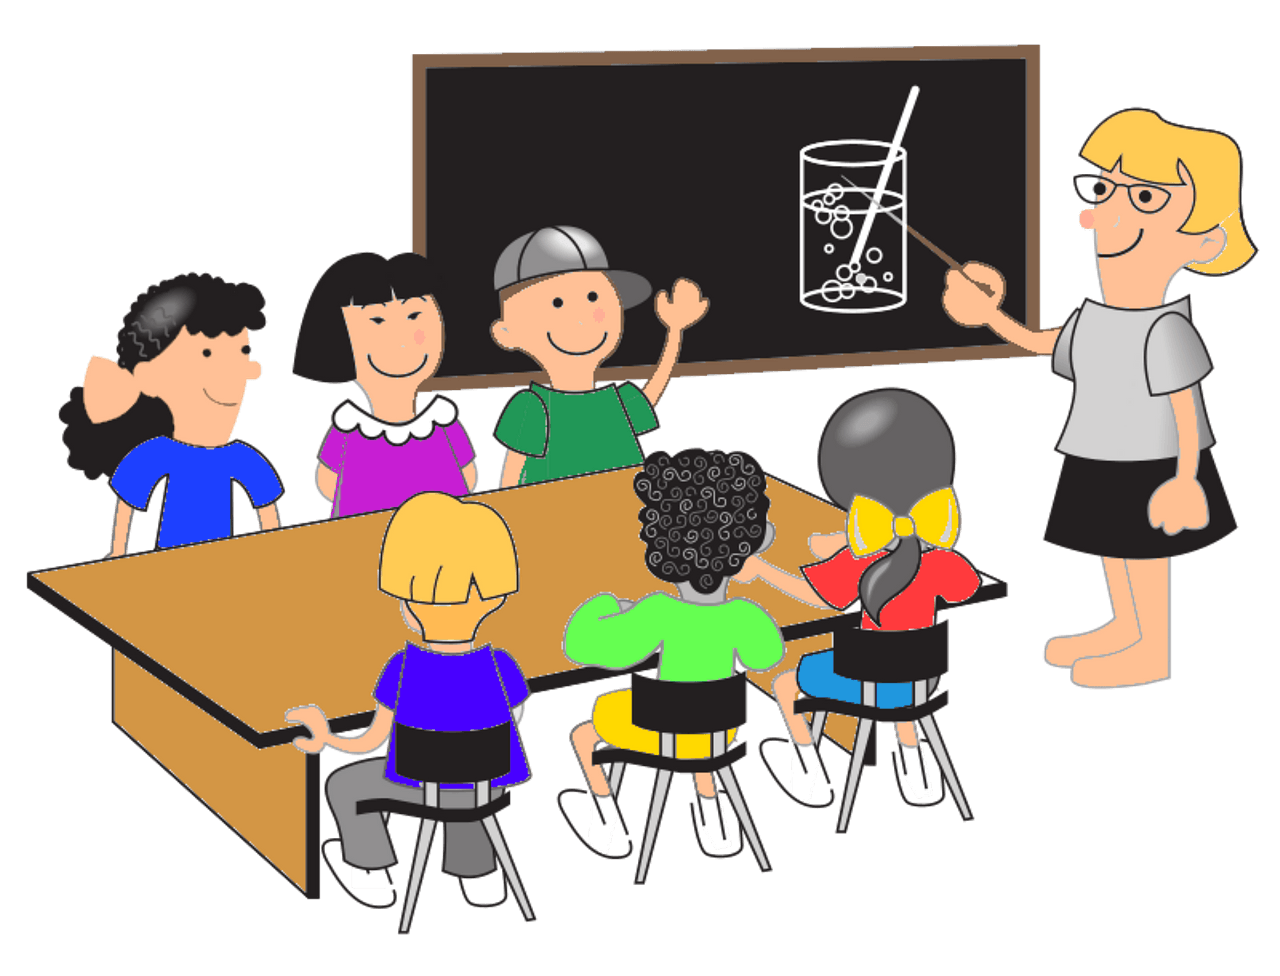 Children in the classroom clipart. Free download..